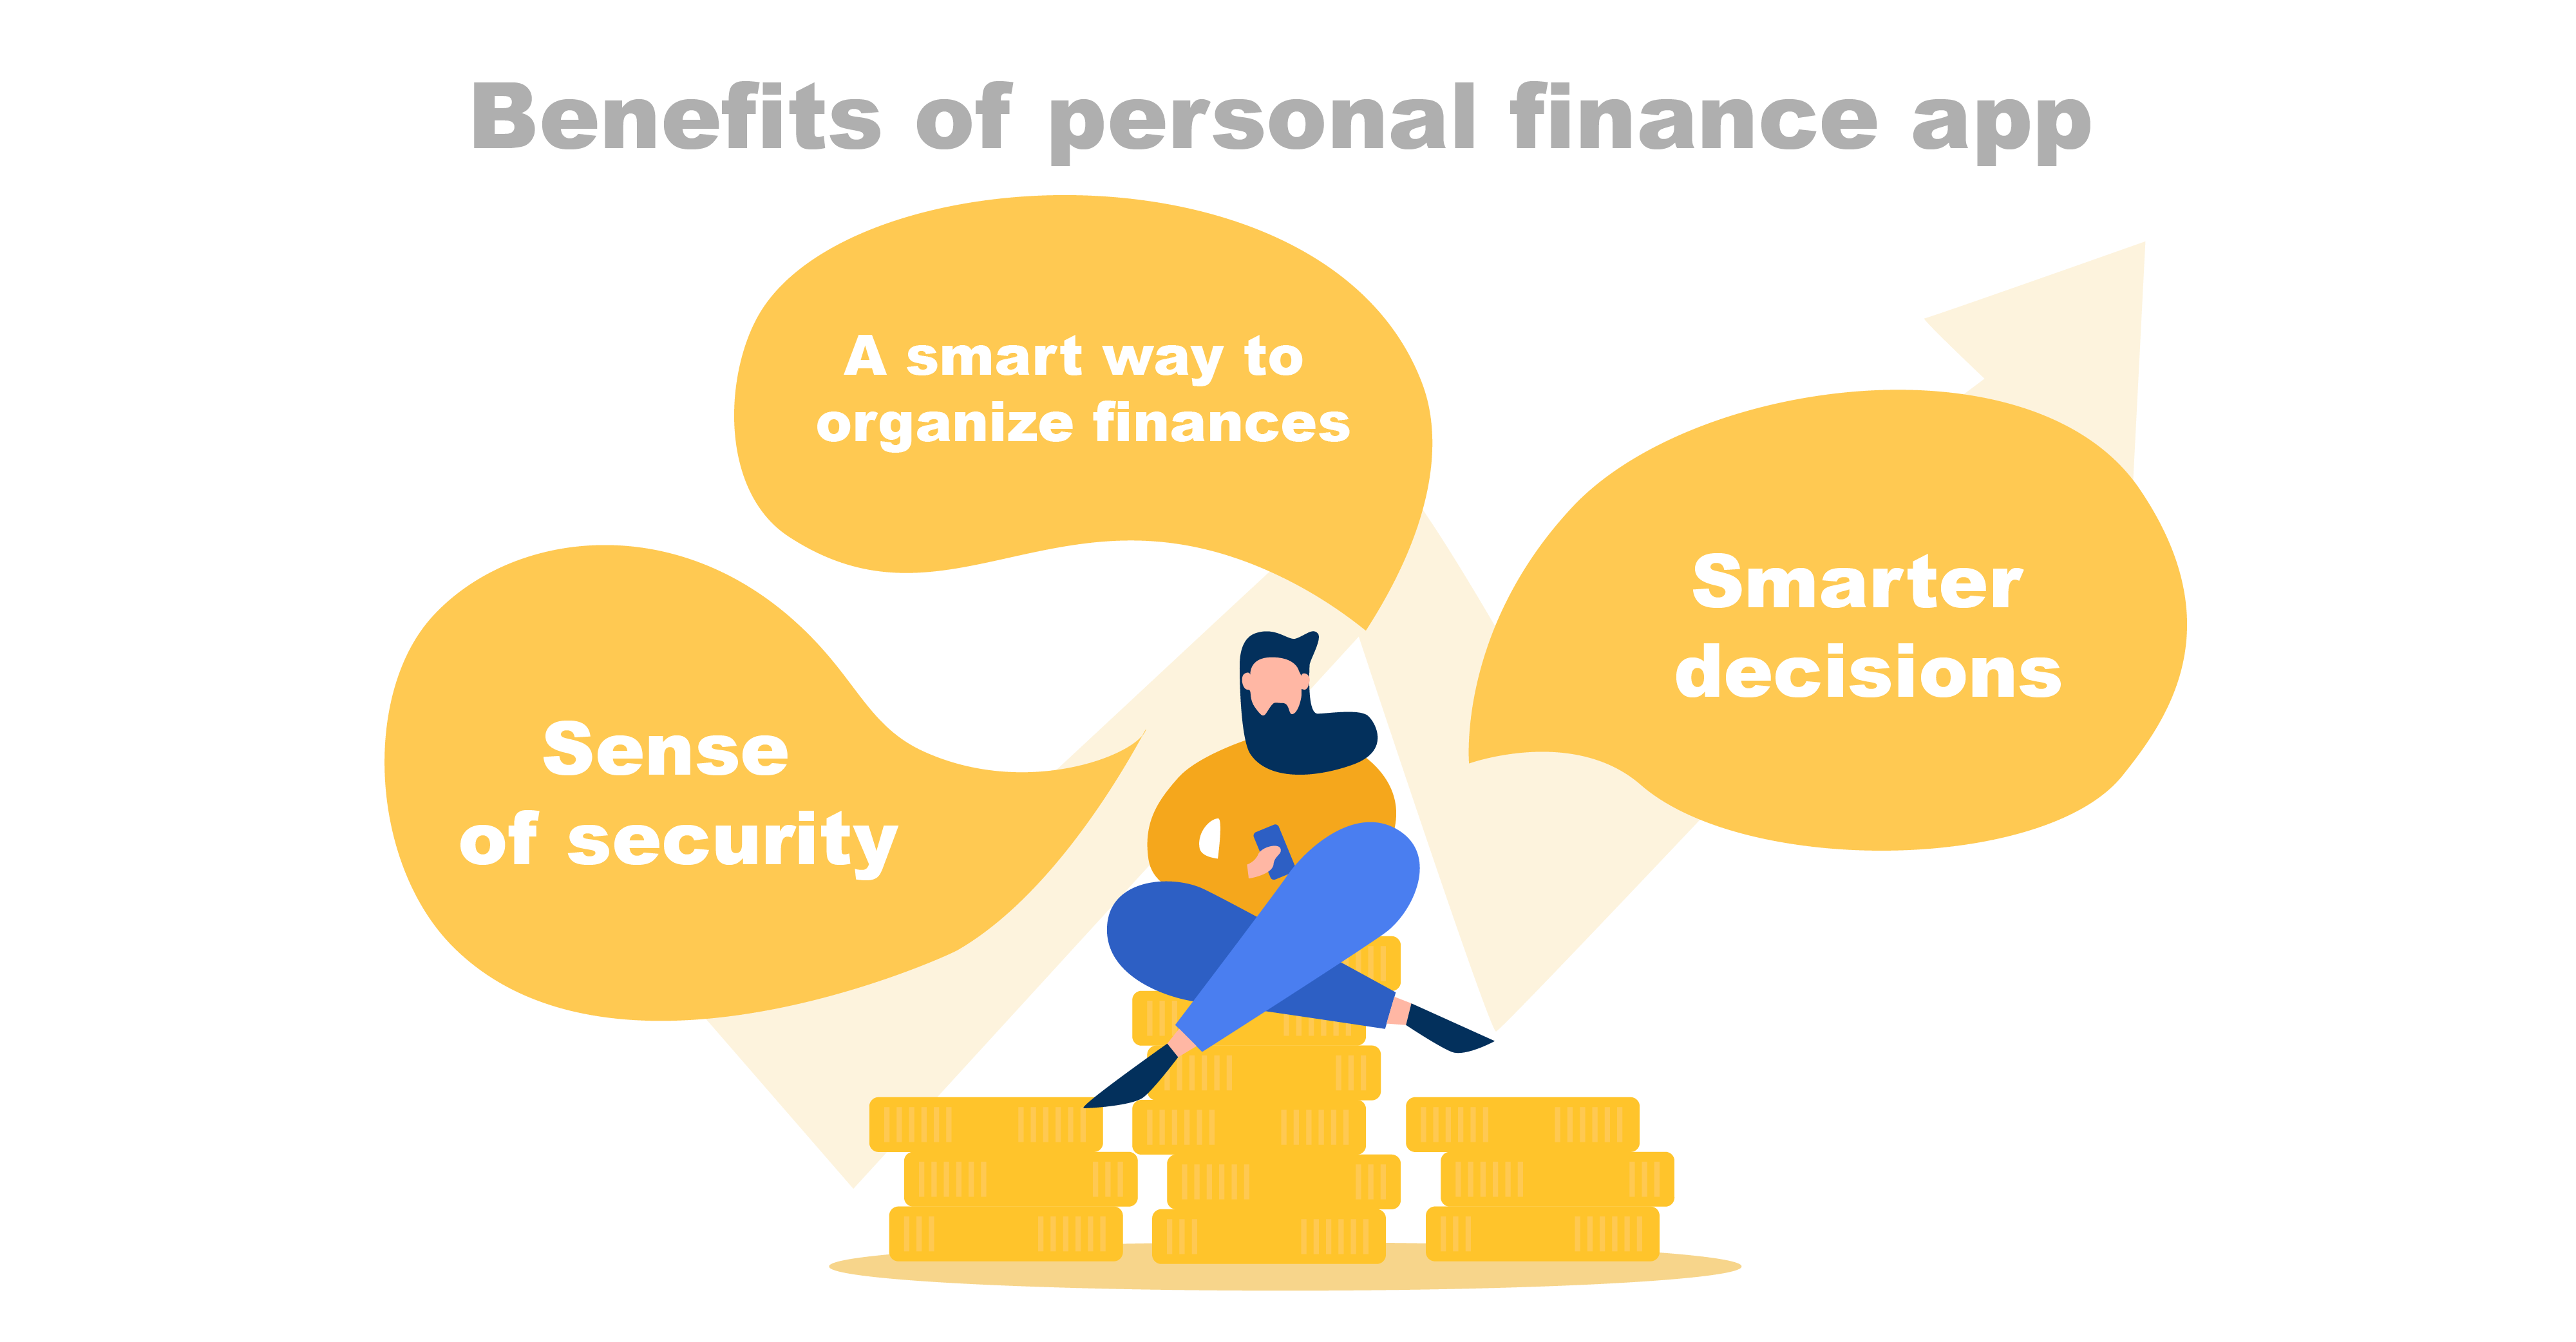 Main benefits of personal finance app